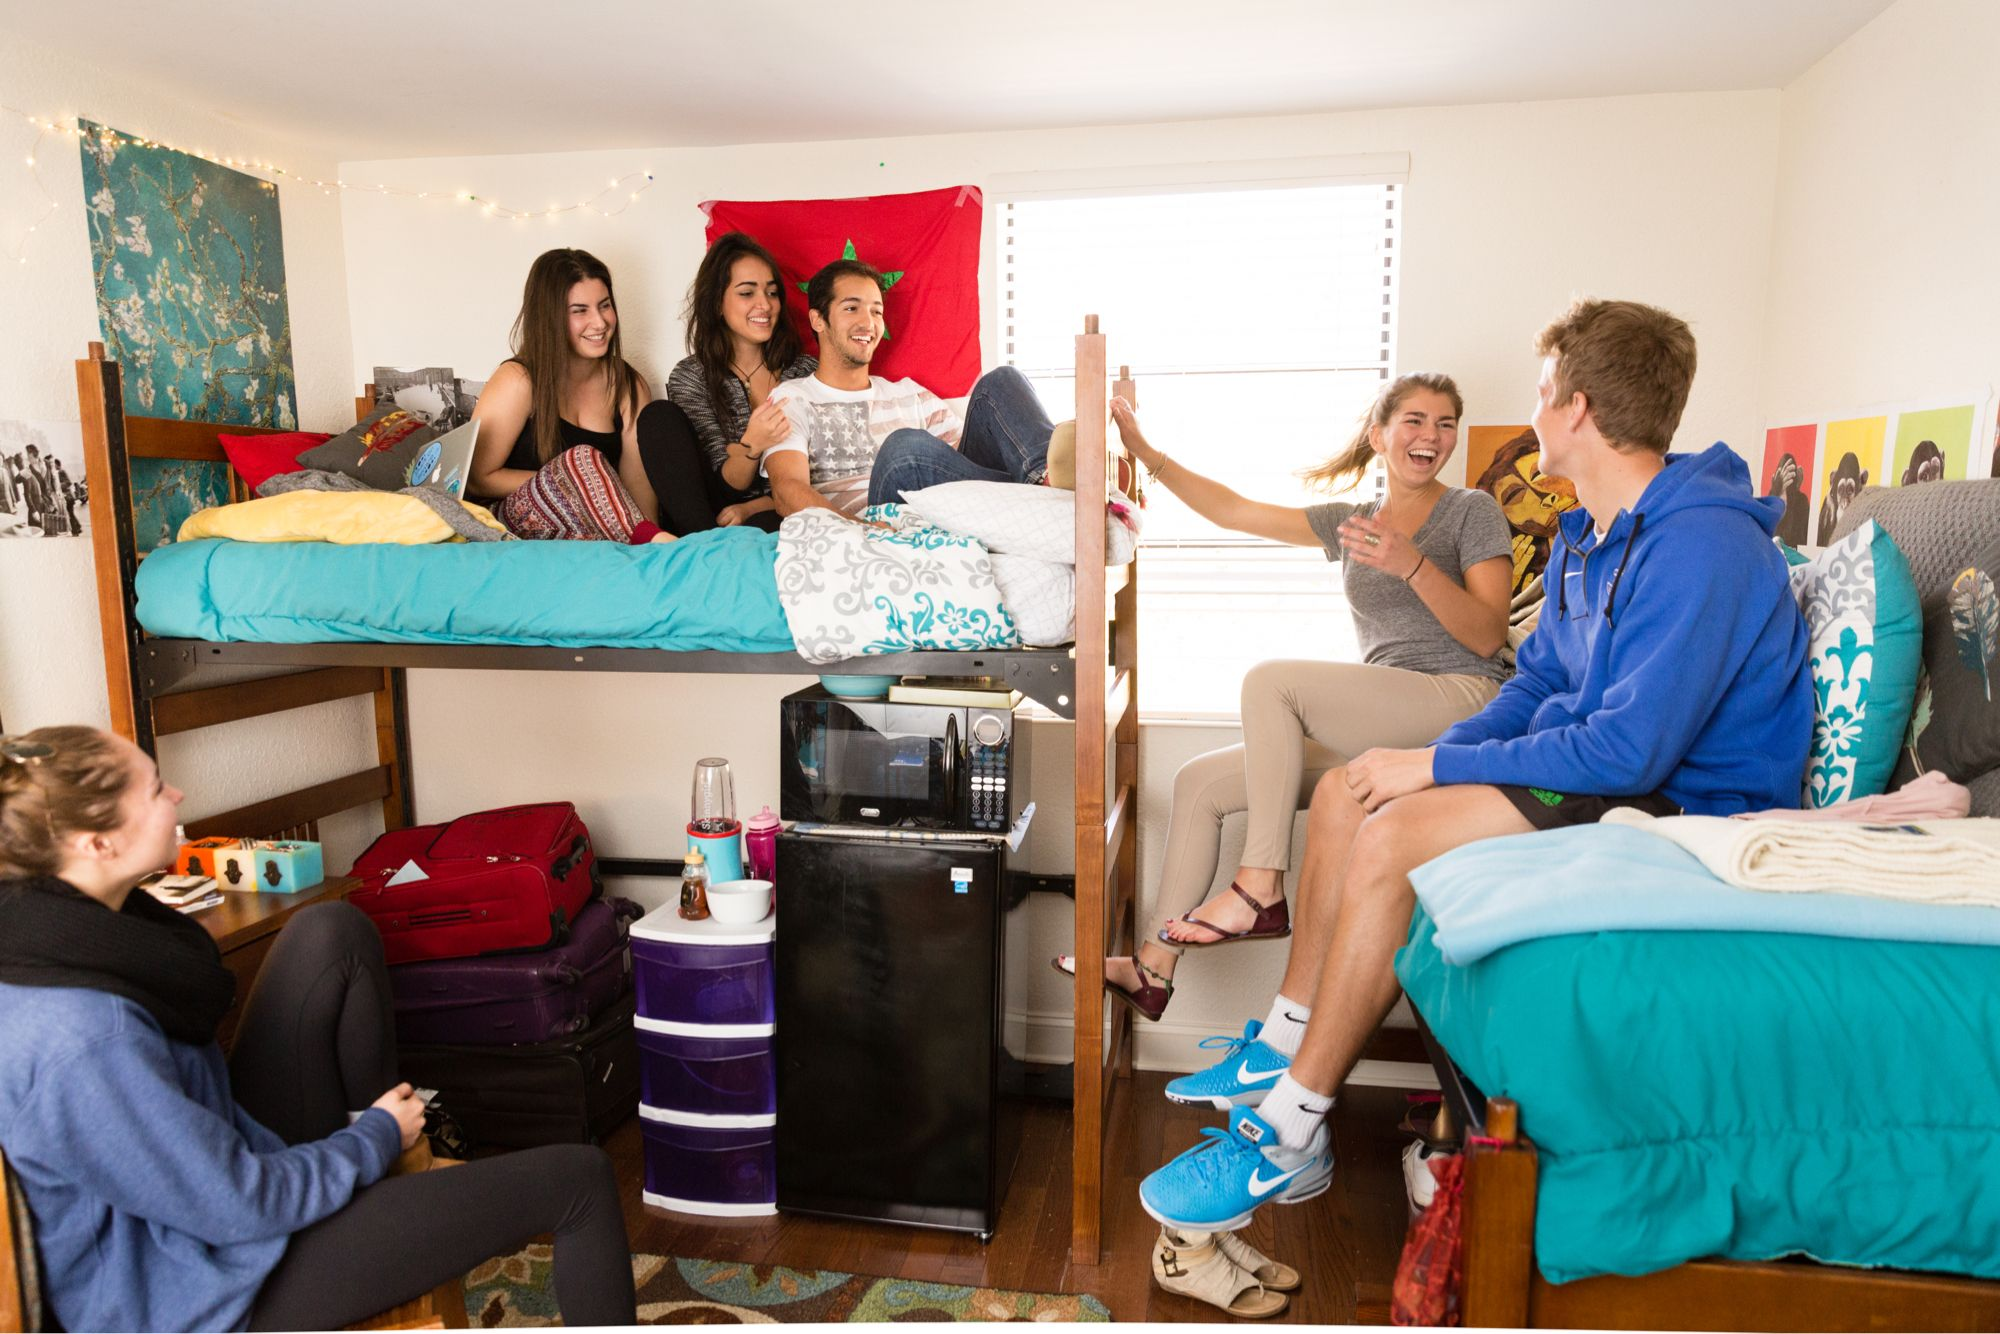 Students hang out in a dorm room.